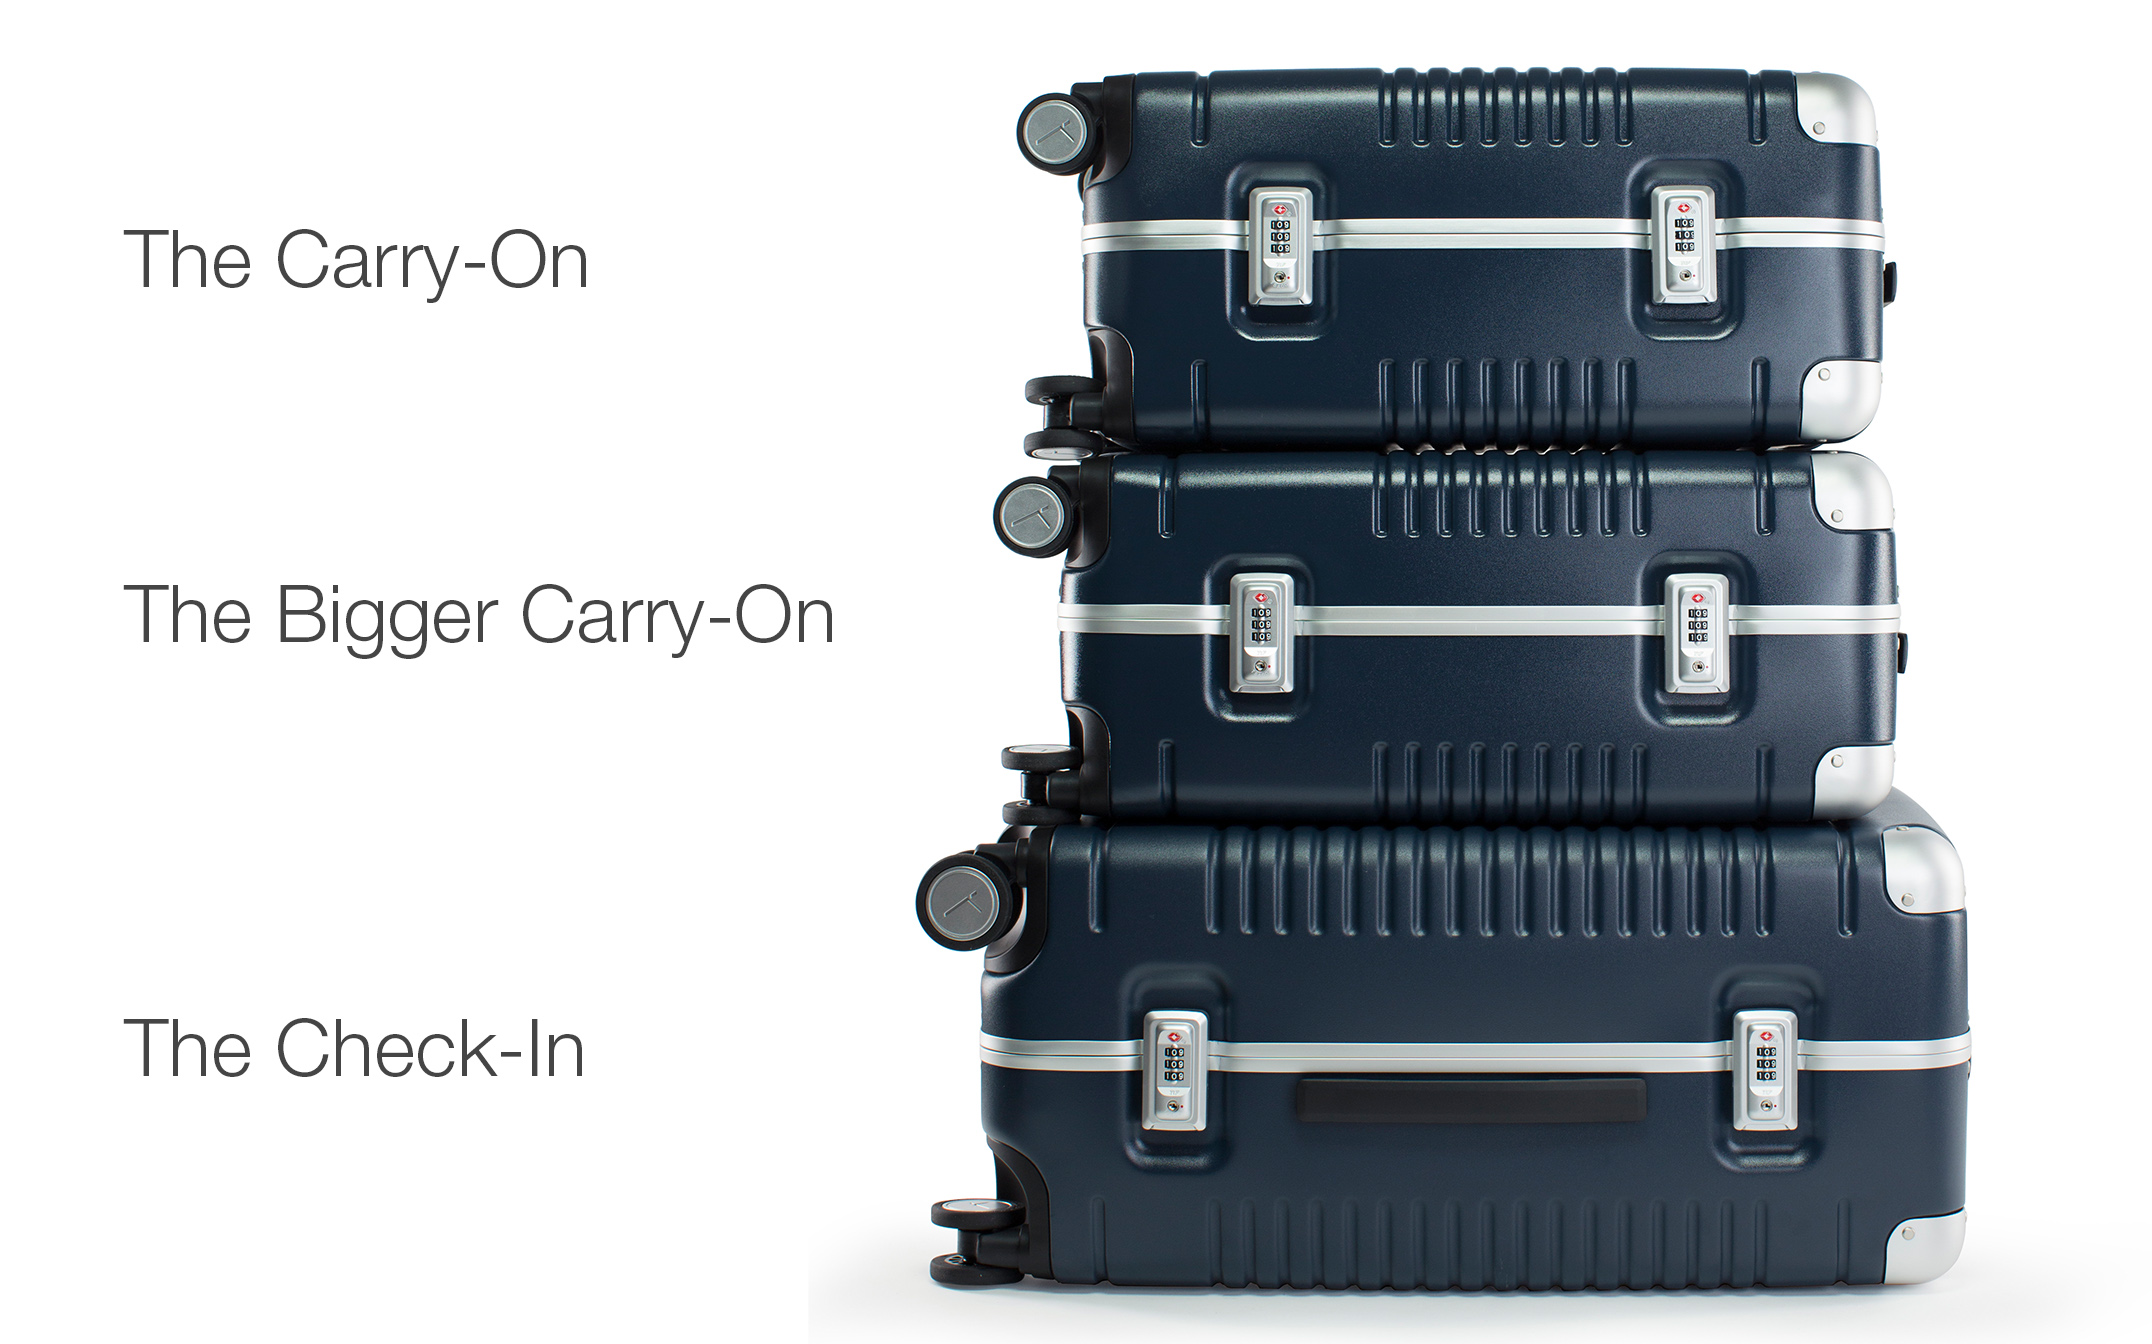 The sizes - The framed Poly-carbonate Collection comes in three sizes: The Carry on is 22 inches and completely compliant with major airlines sizing requirements. The Bigger Carry-On is 23 inches, gives you a bit more room to pack and its still compliant with most international flights in bigger planes. The Check-In is 27 inches and perfect for 2-3 week trip.